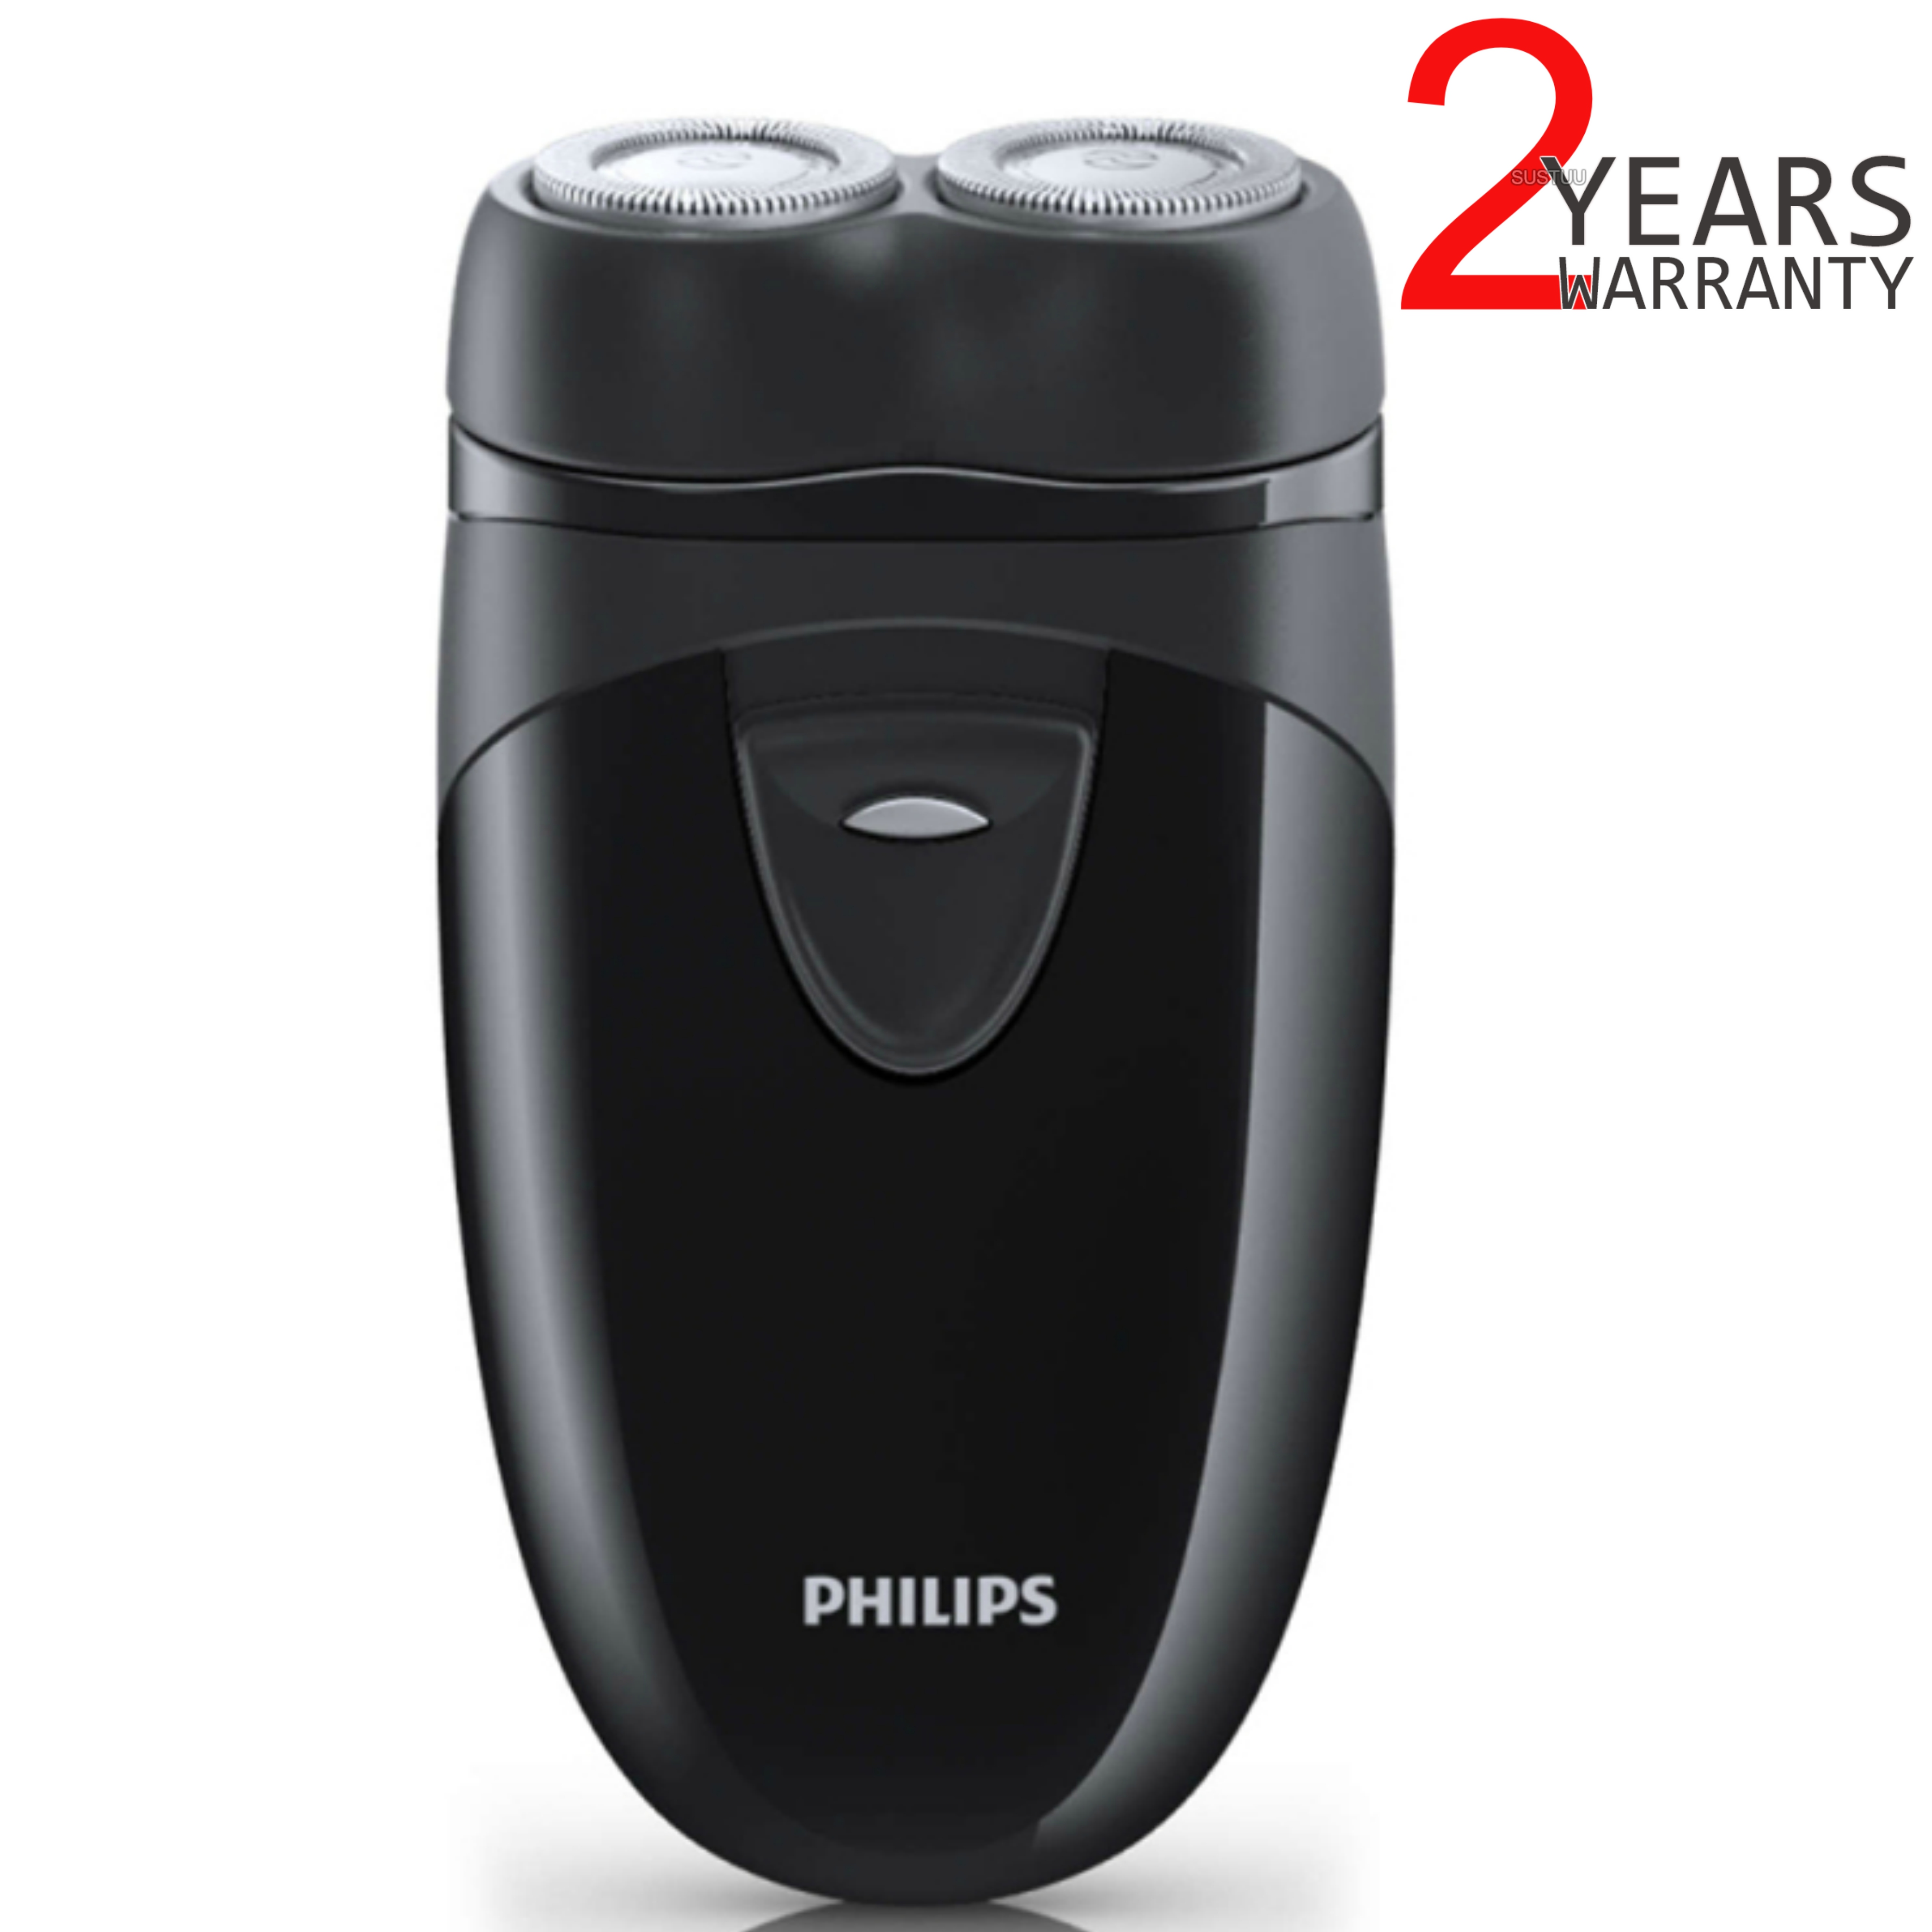 Philips Electric Travel Shaver | Twin Rotary Heads & Pouch | Cordless | PQ203/17 | Black